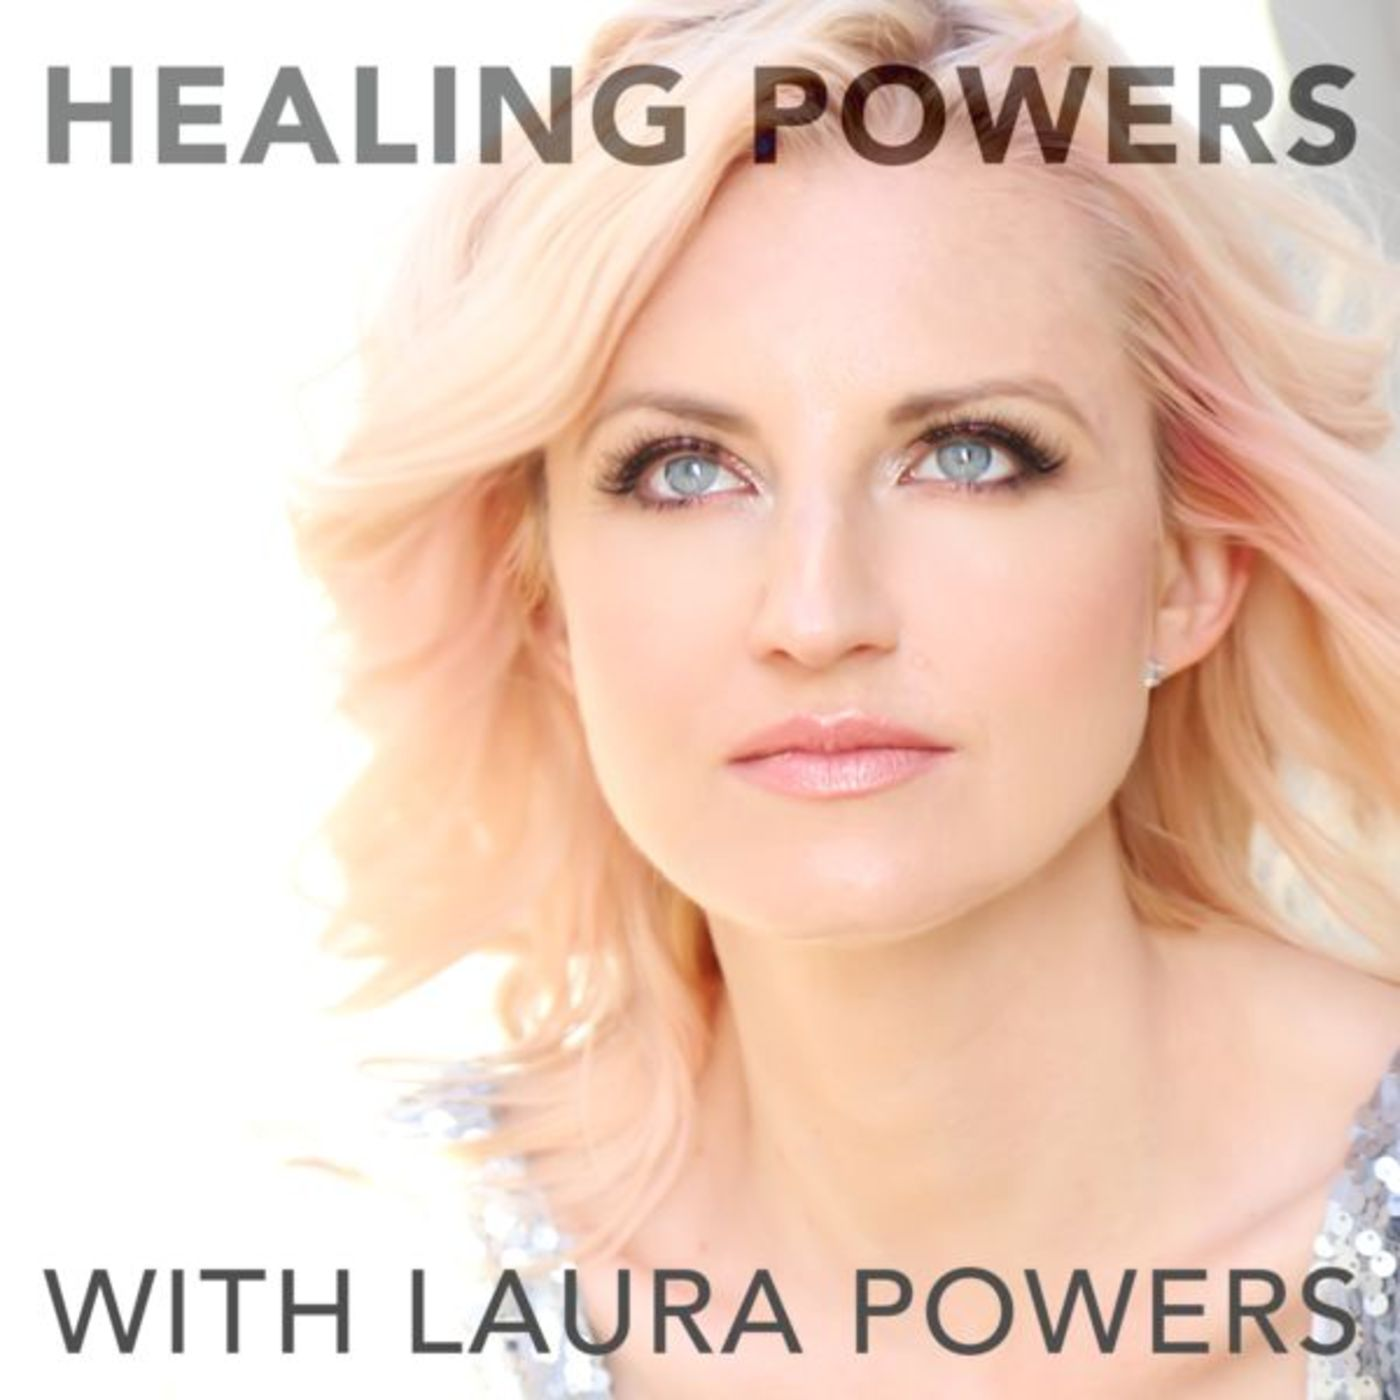 <![CDATA[Healing Powers Podcast]]>